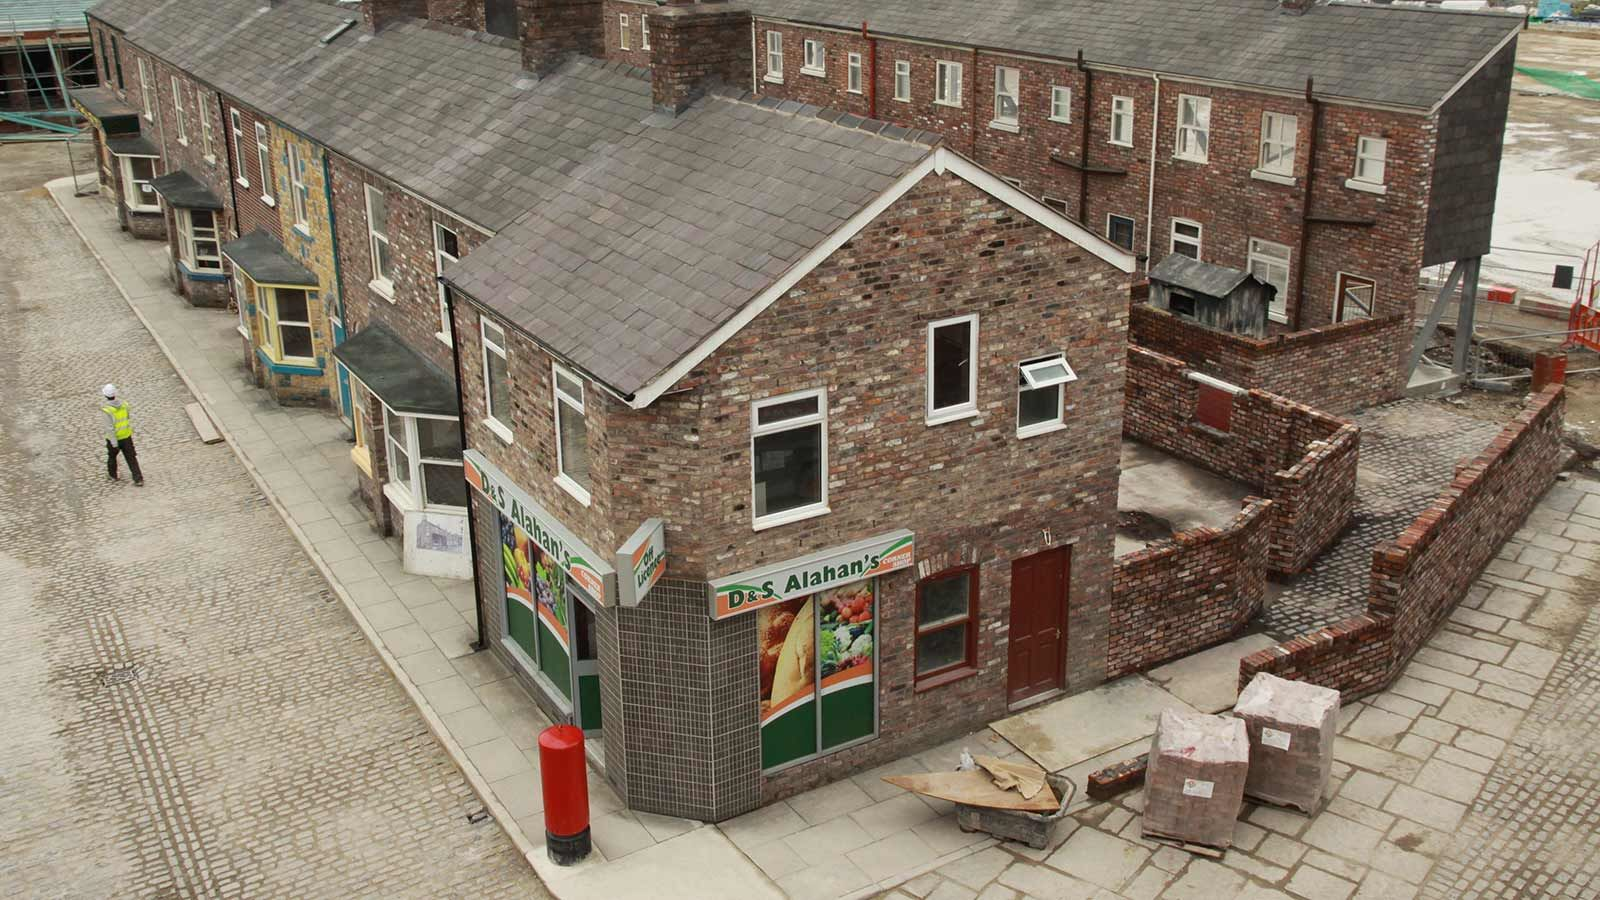 Coronation Street Building Aerial View - Mace Group